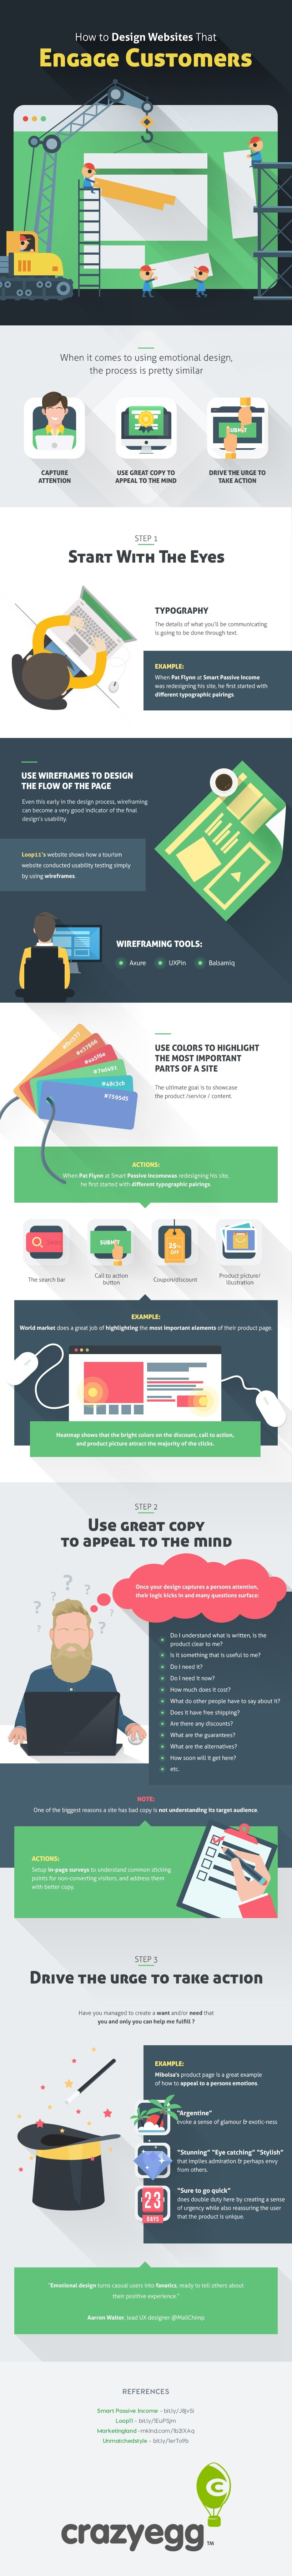 Use Great Website Design to Increase Customer Engagement Infographic image